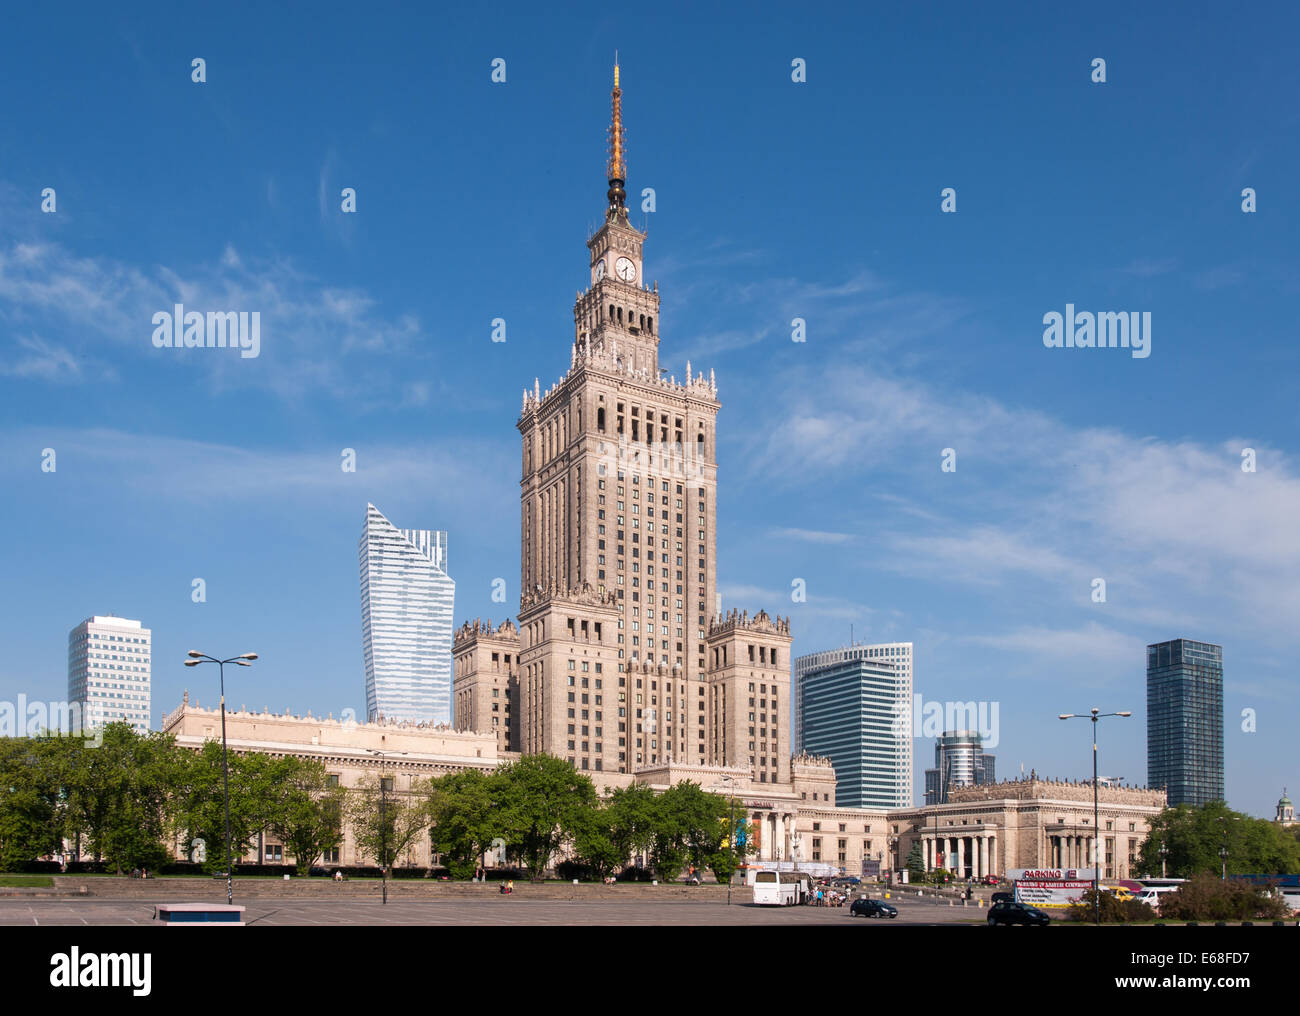 Warsaw city center with Palace of Culture and Science (PKiN),  a landmark and symbol of Stalinism and communism - Stock Image